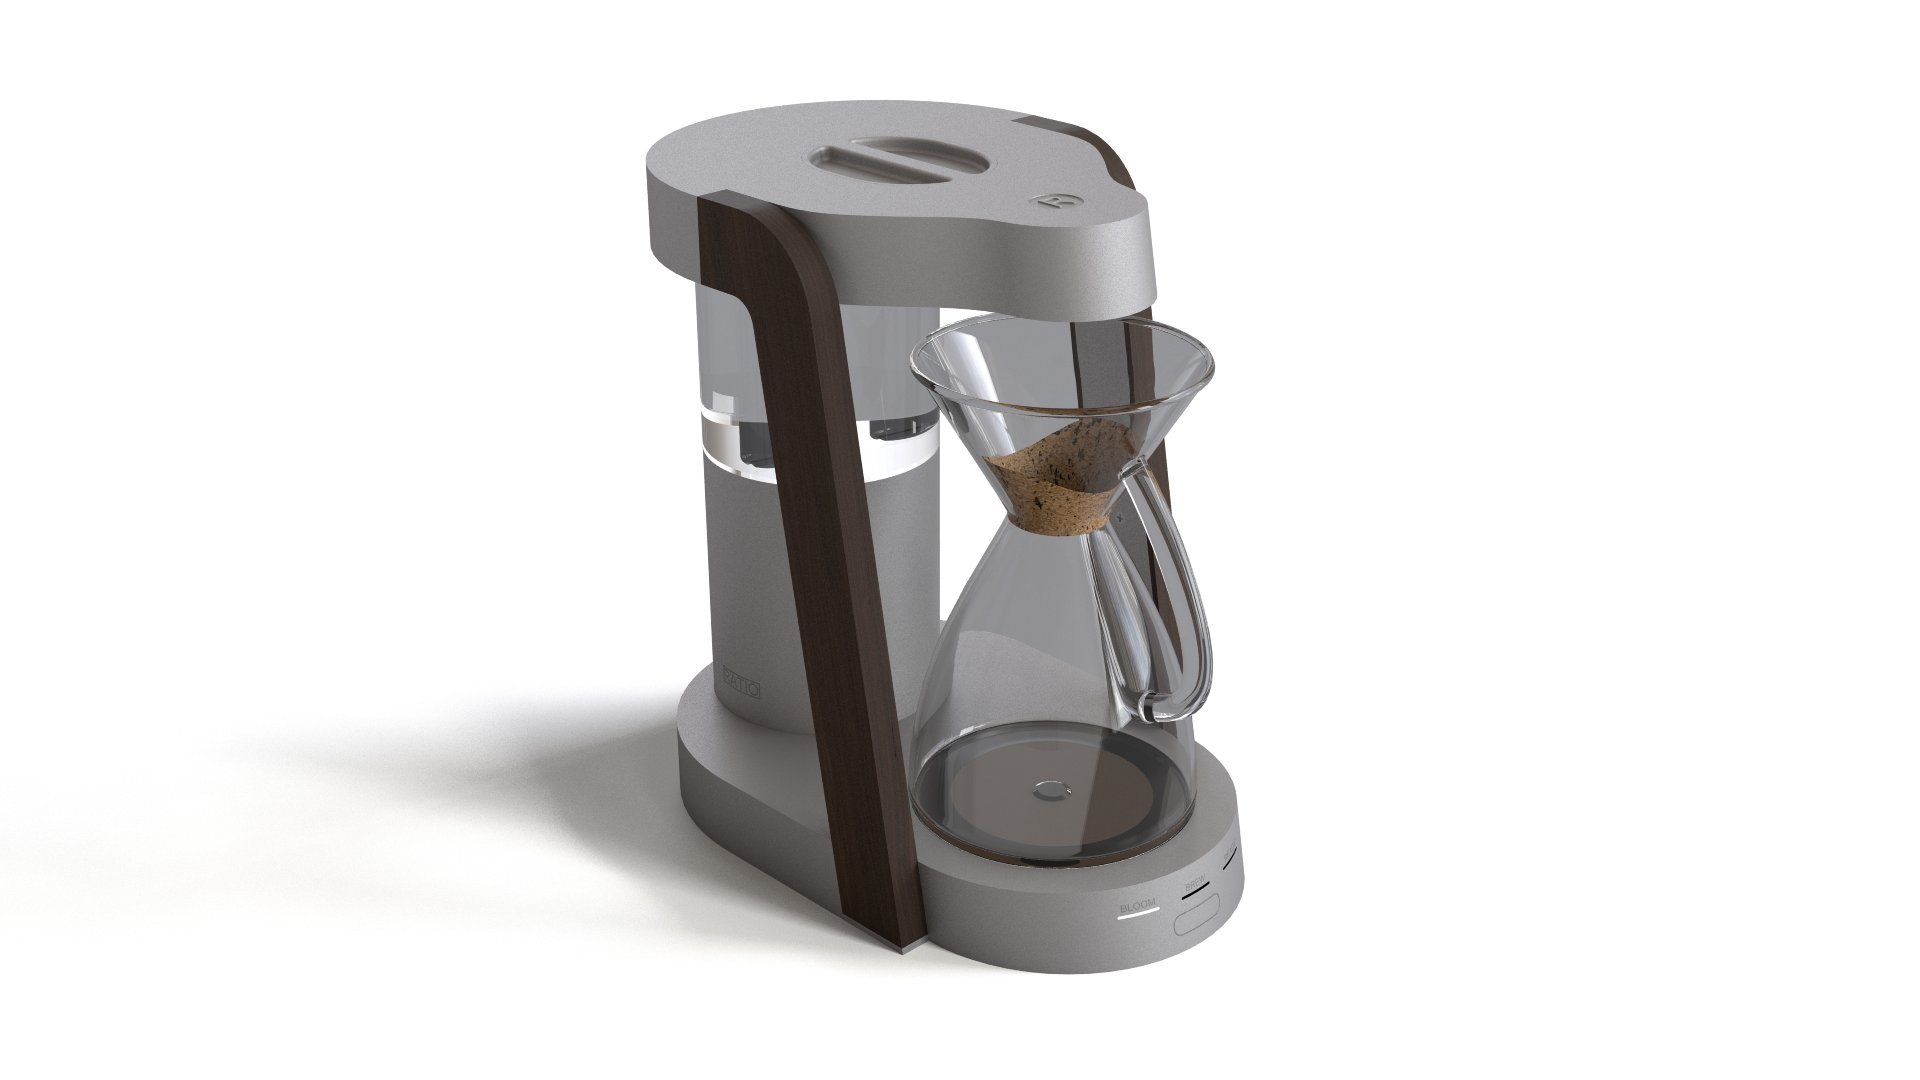 Coffee Maker Ratio : RATIO Coffee Maker FlyingArchitecture